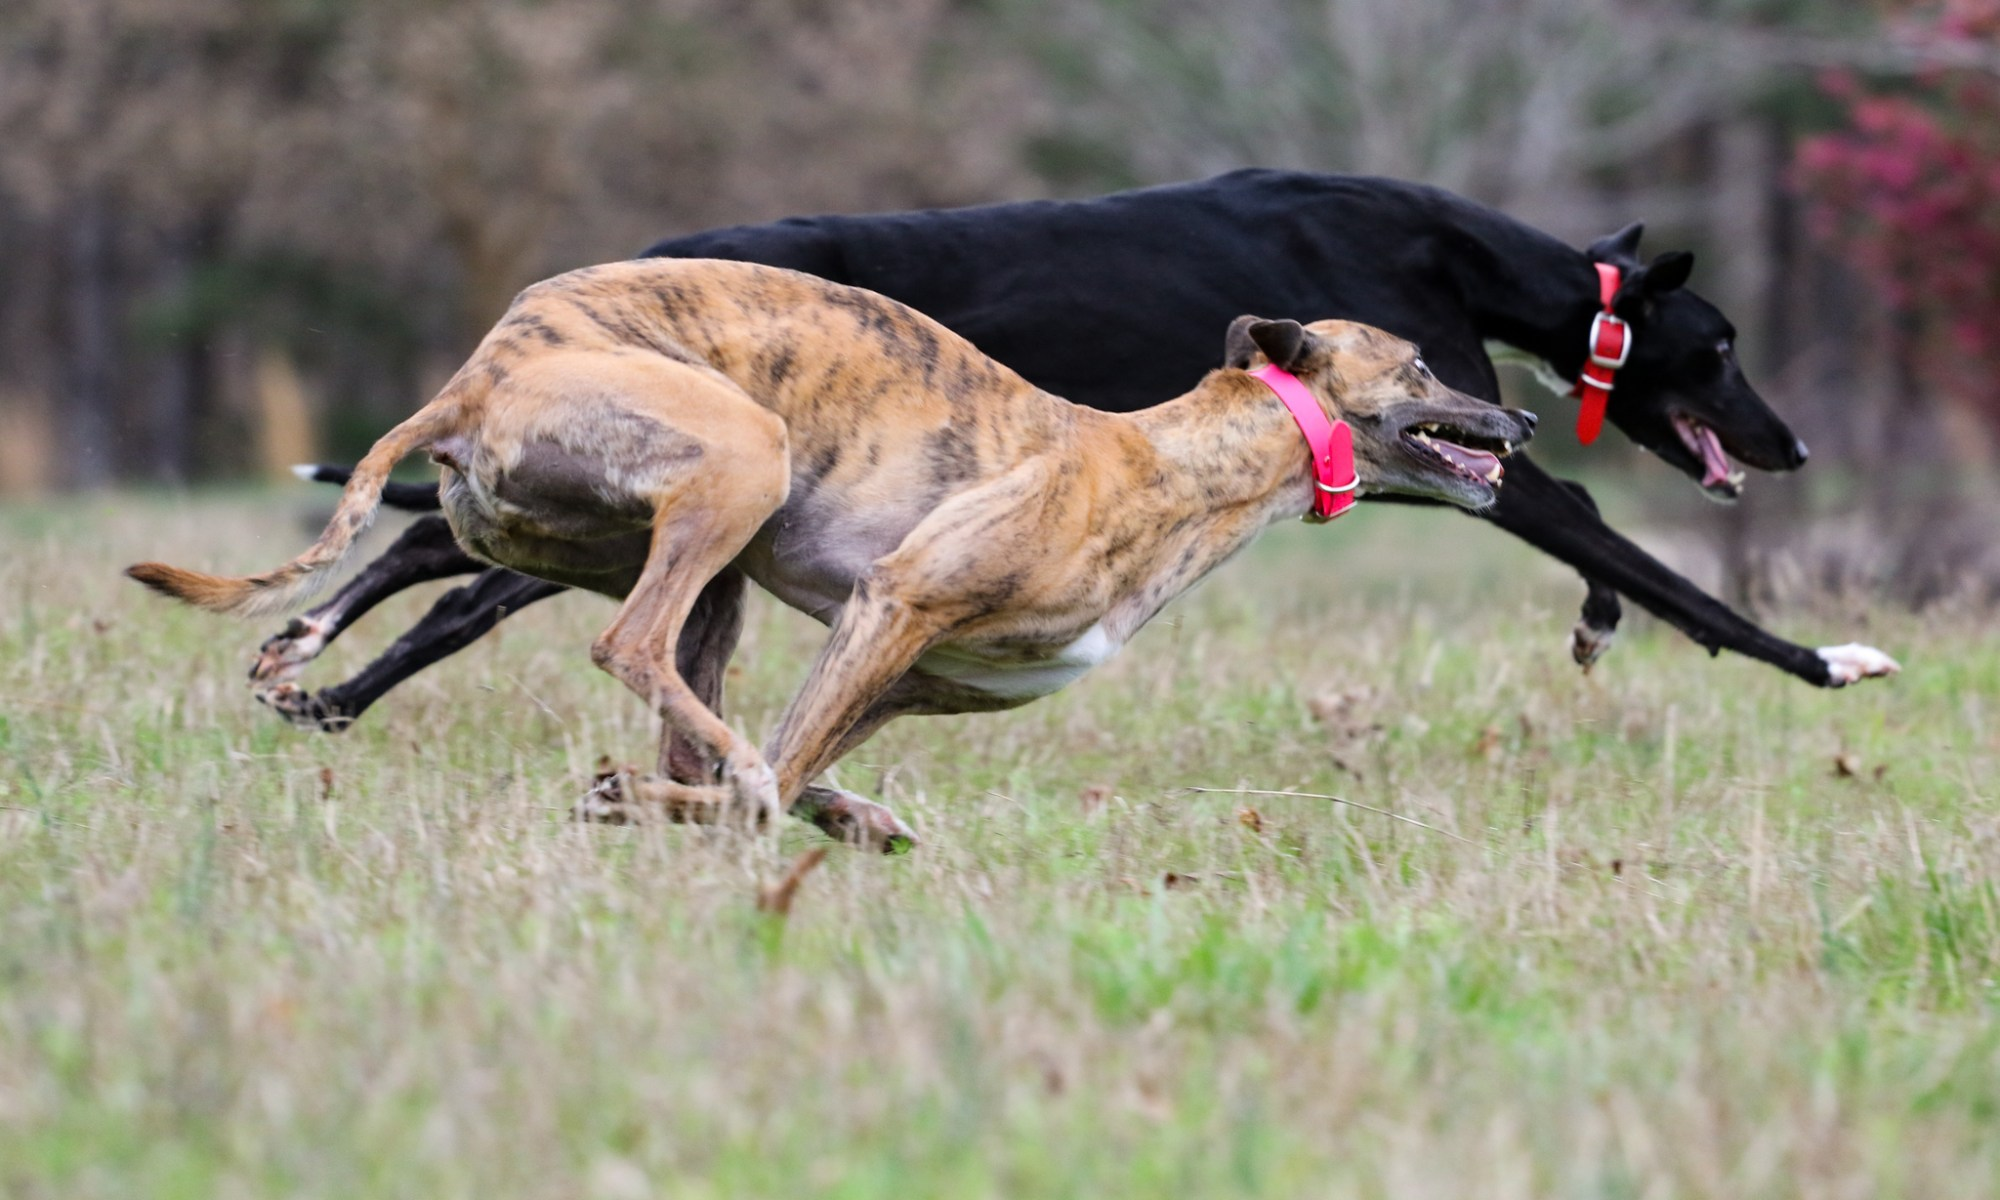 Am I The Only Greyhound Owner Who Gets Annoyed When Asked If My Greyhound  Was Rescued? It Really Gets Under My Skin And It Seems To Happen Far Too  Often